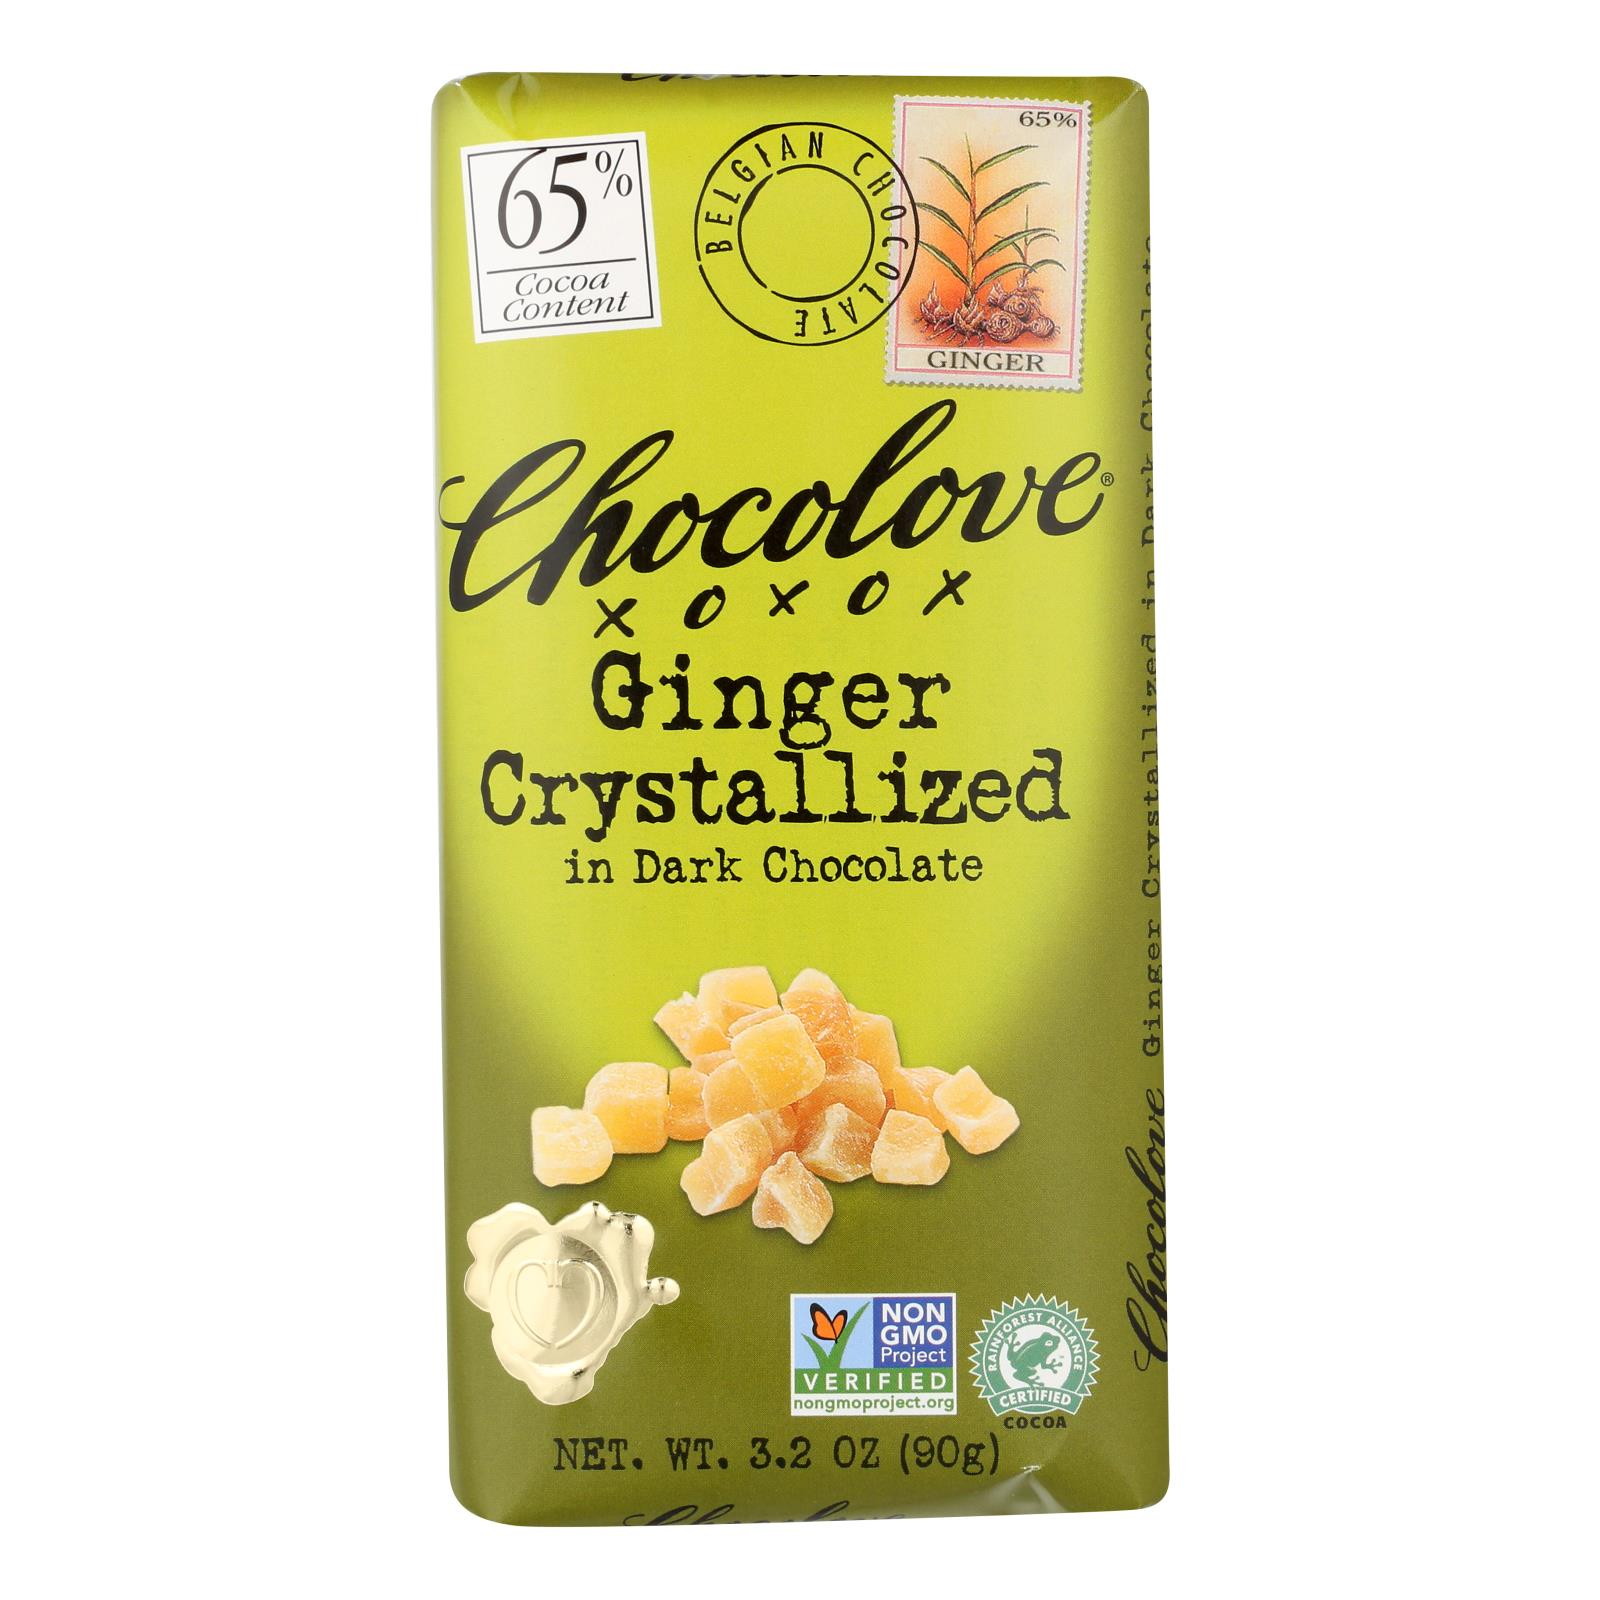 Chocolove Xoxox - Premium Chocolate Bar - Dark Chocolate - Ginger Crystallized - 3.2 oz Bars - Case of 12